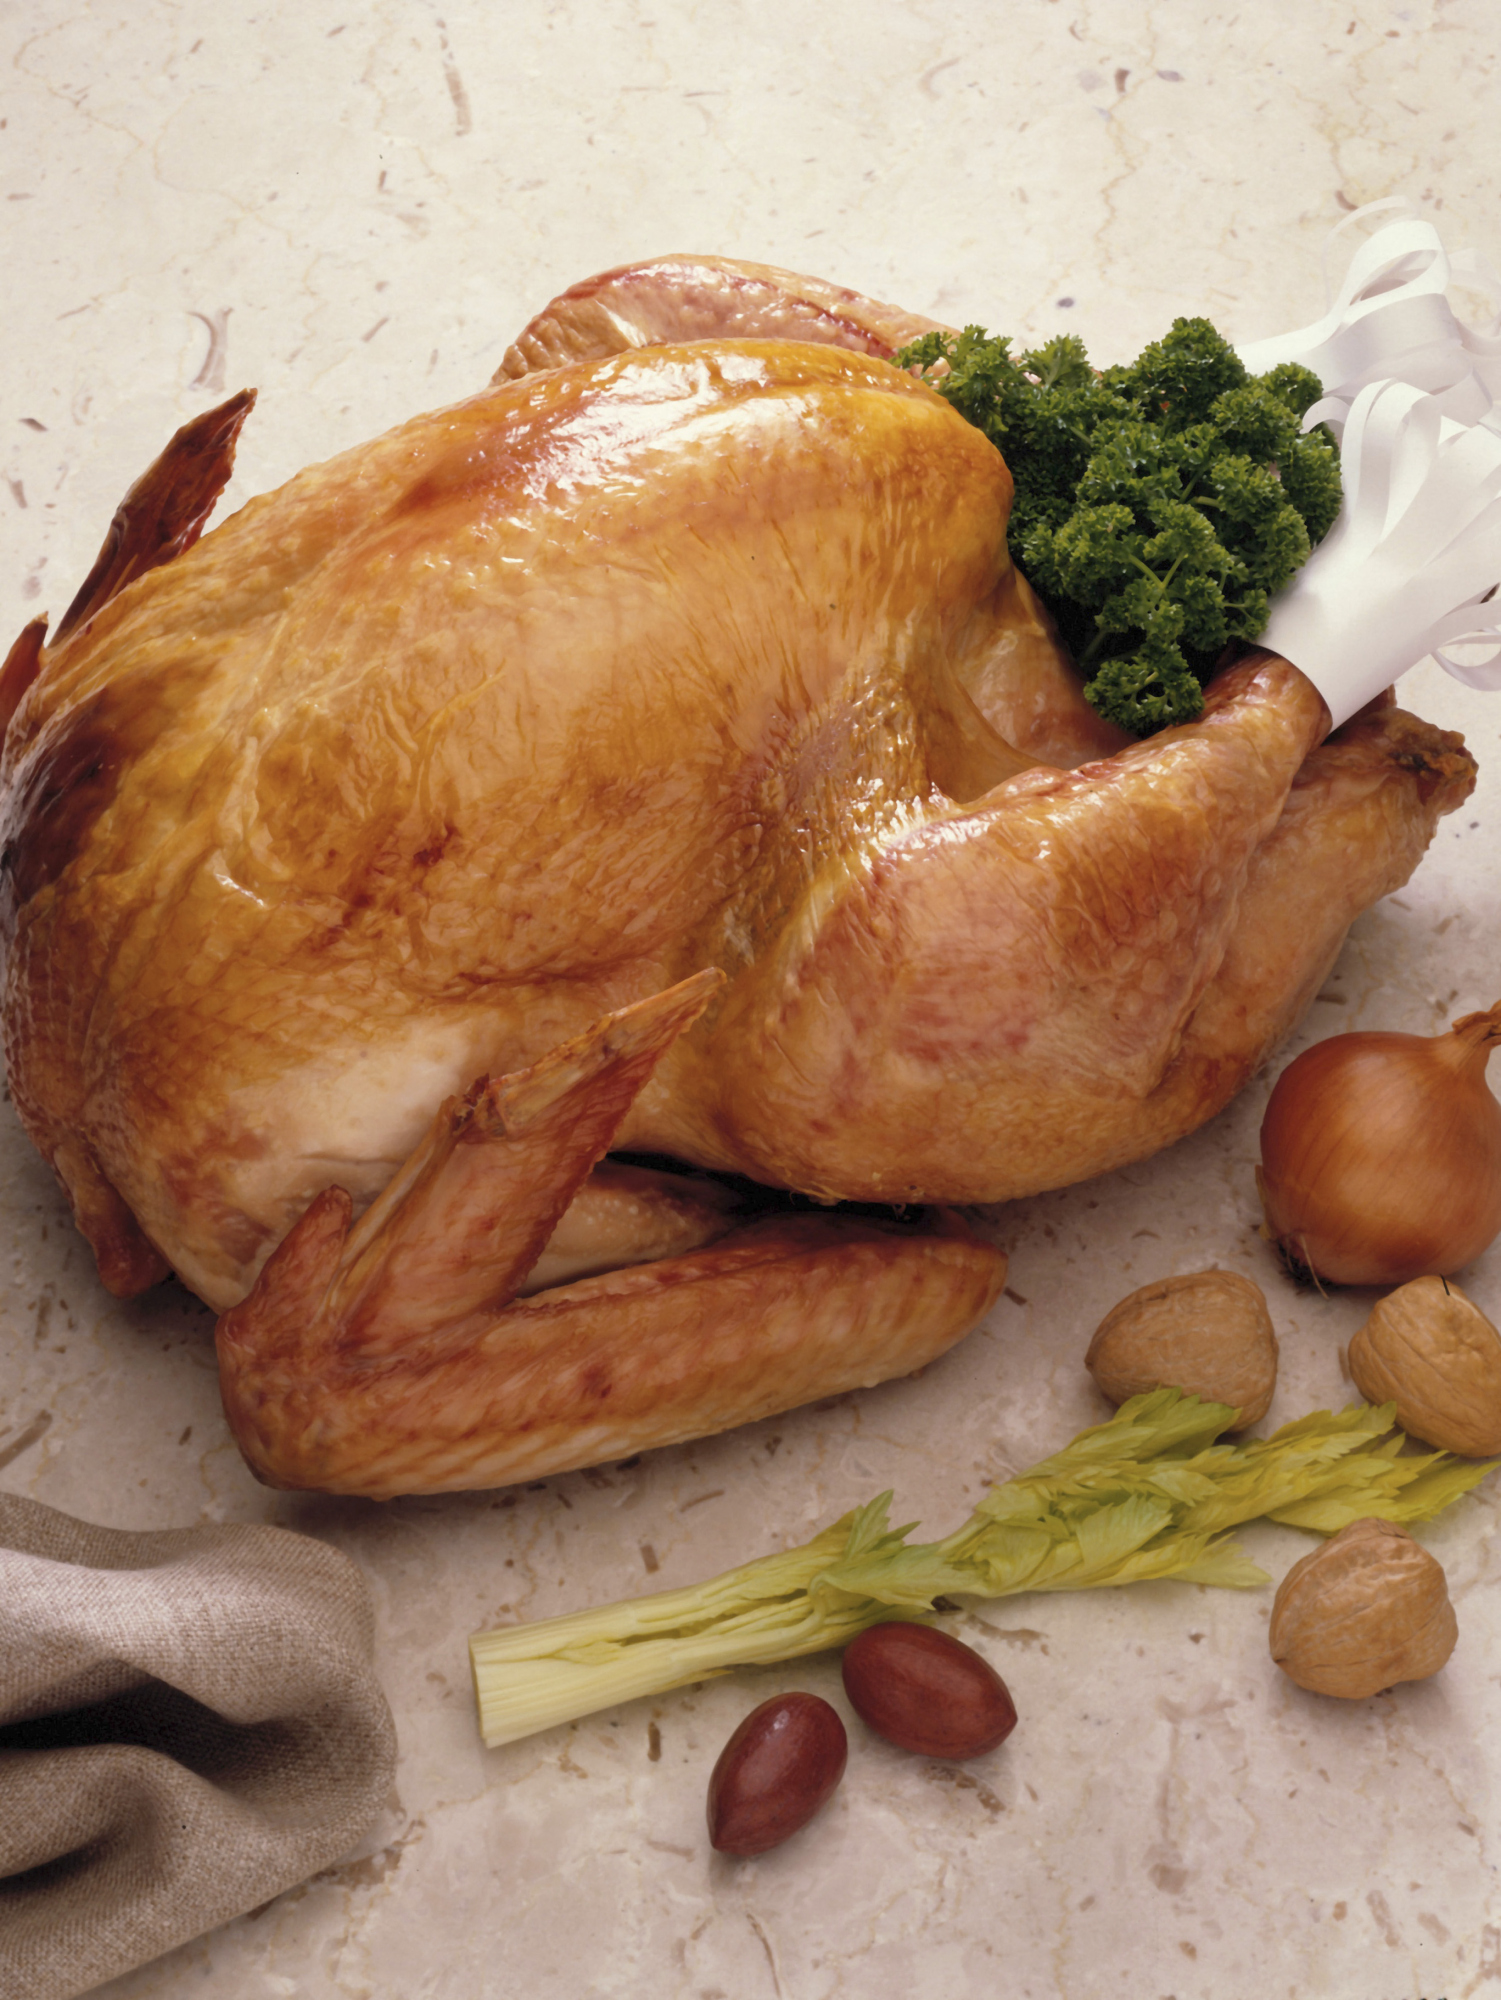 Chicken has the same amount of vitamin B-12 per serving as turkey.